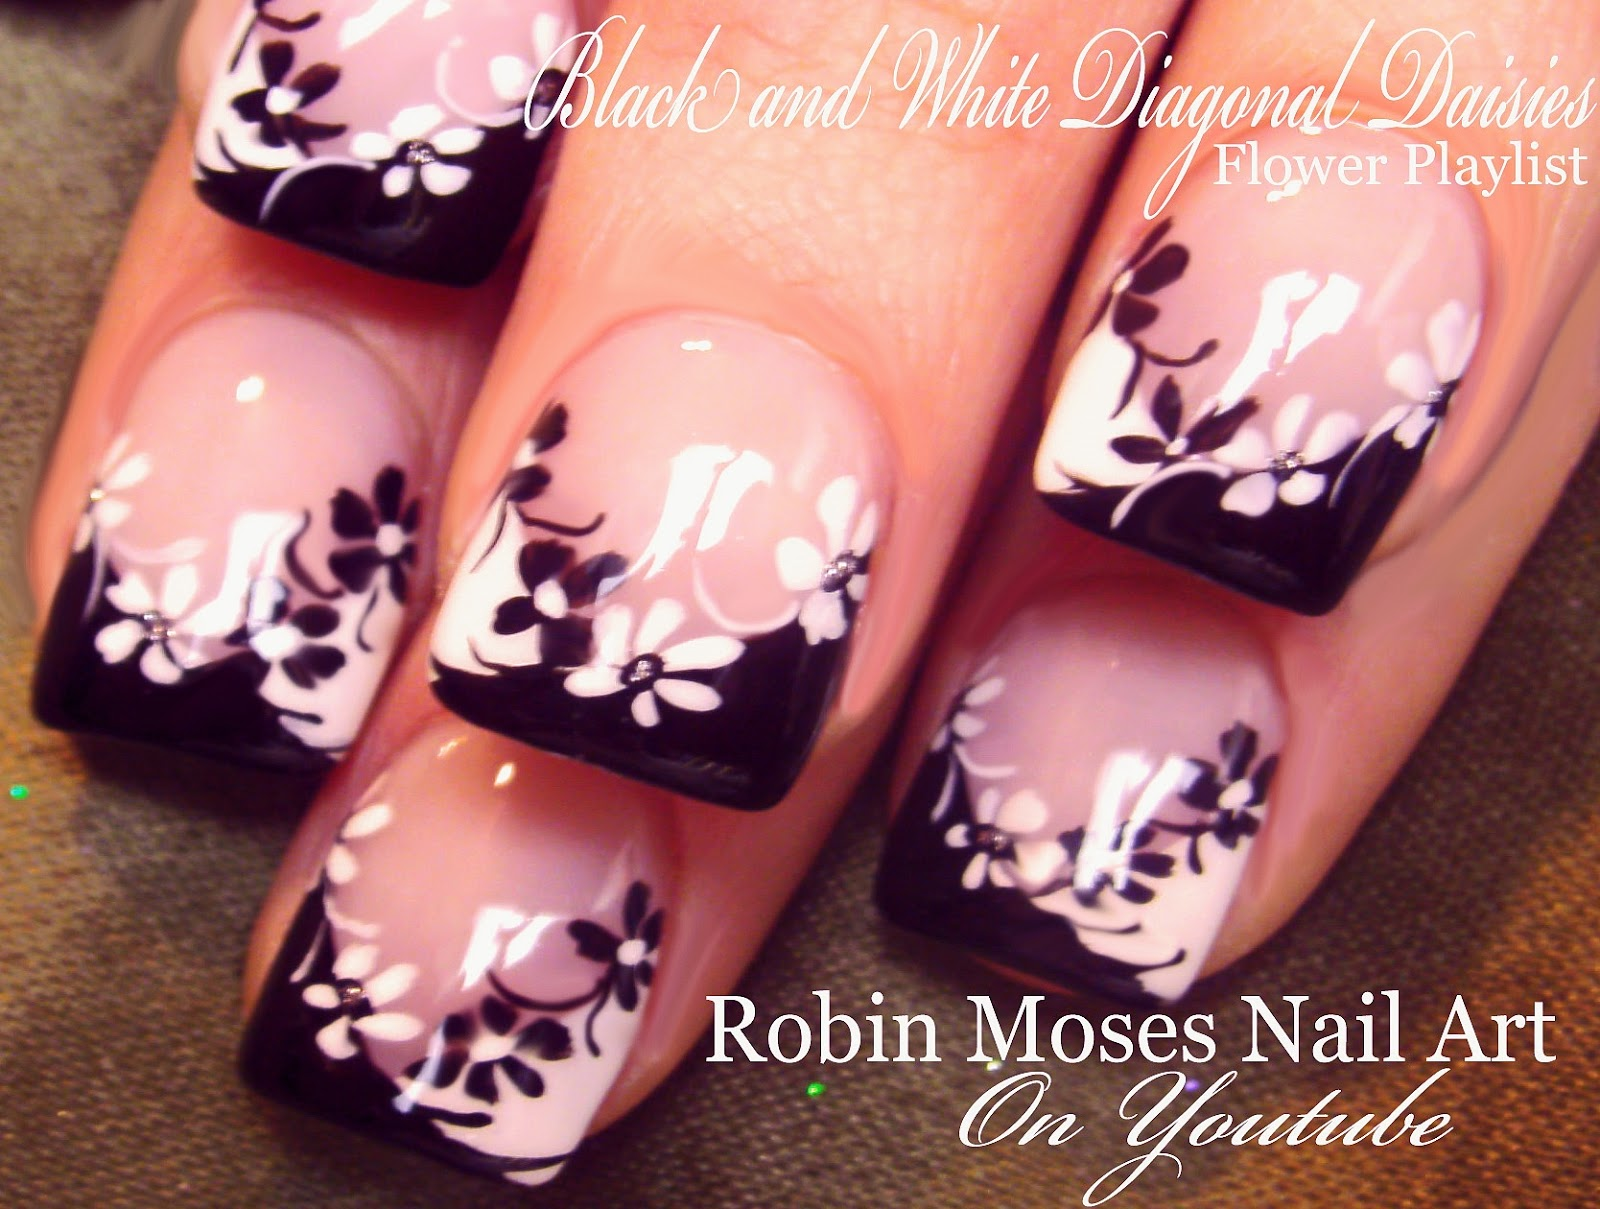 Nail Art By Robin Moses Black And White Daisies On A Diagonal